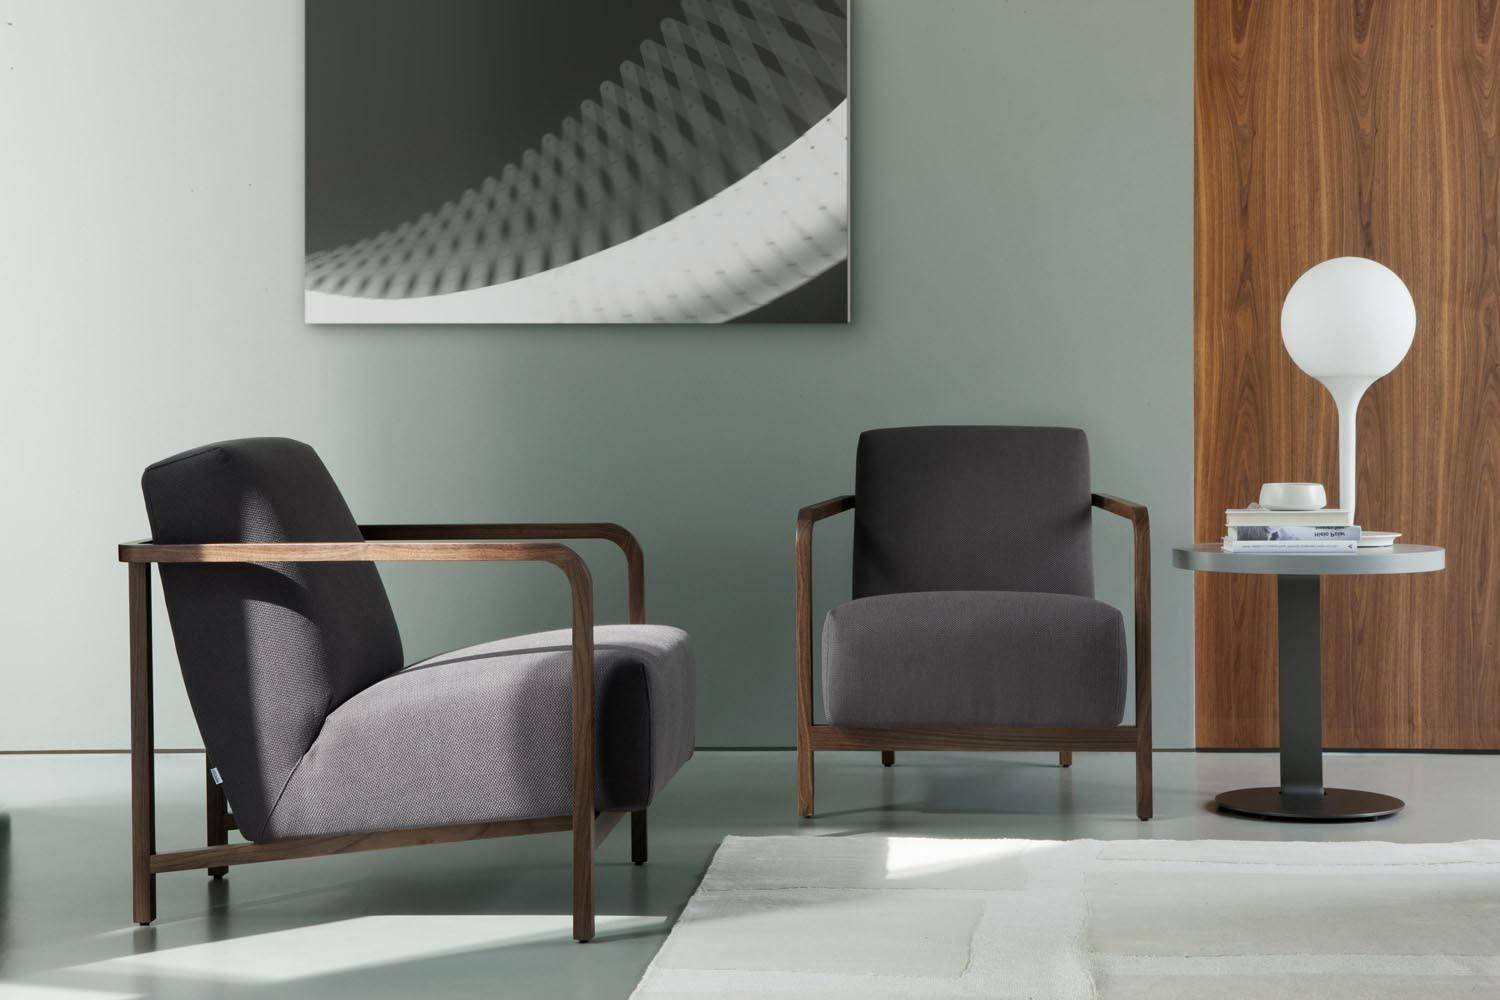 Gilda Armchair by T. Colzani for Porada